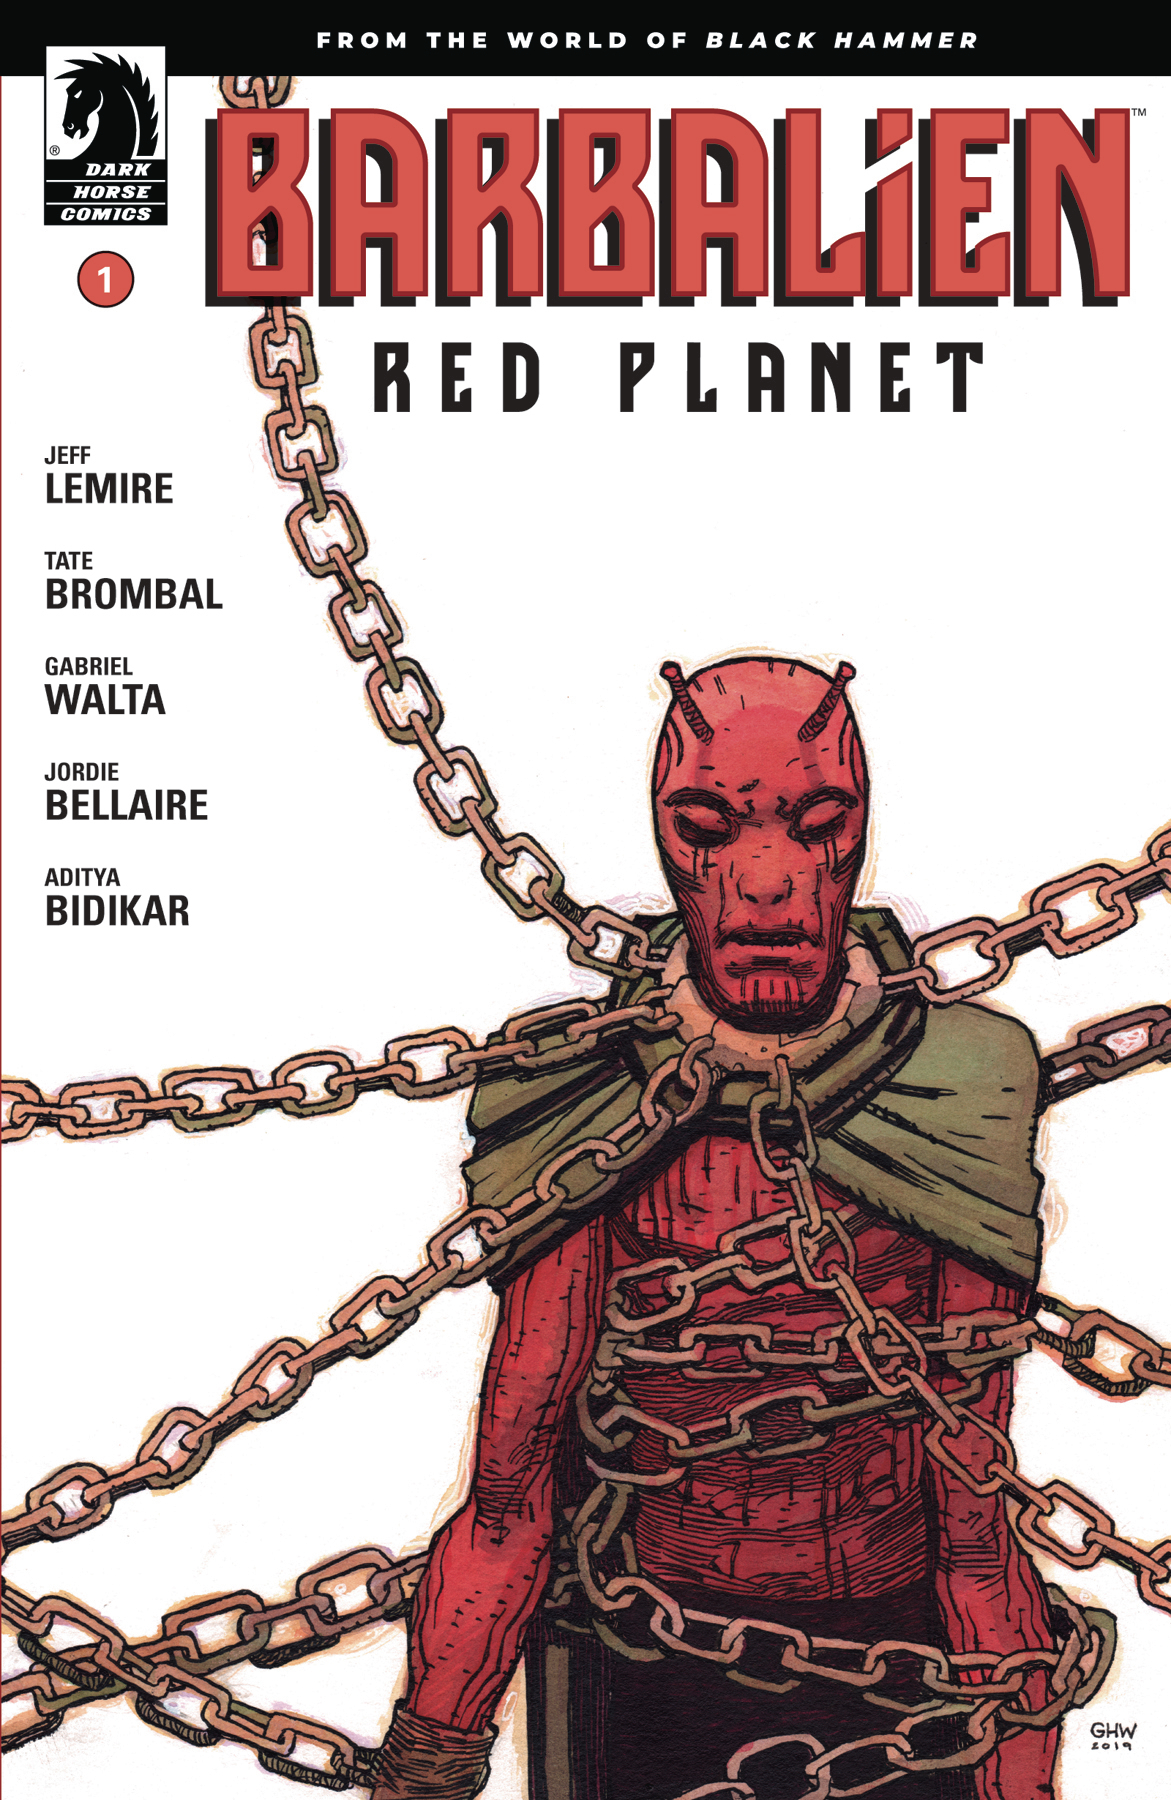 BARBALIEN RED PLANET #1 (OF 5) CVR A WALTA